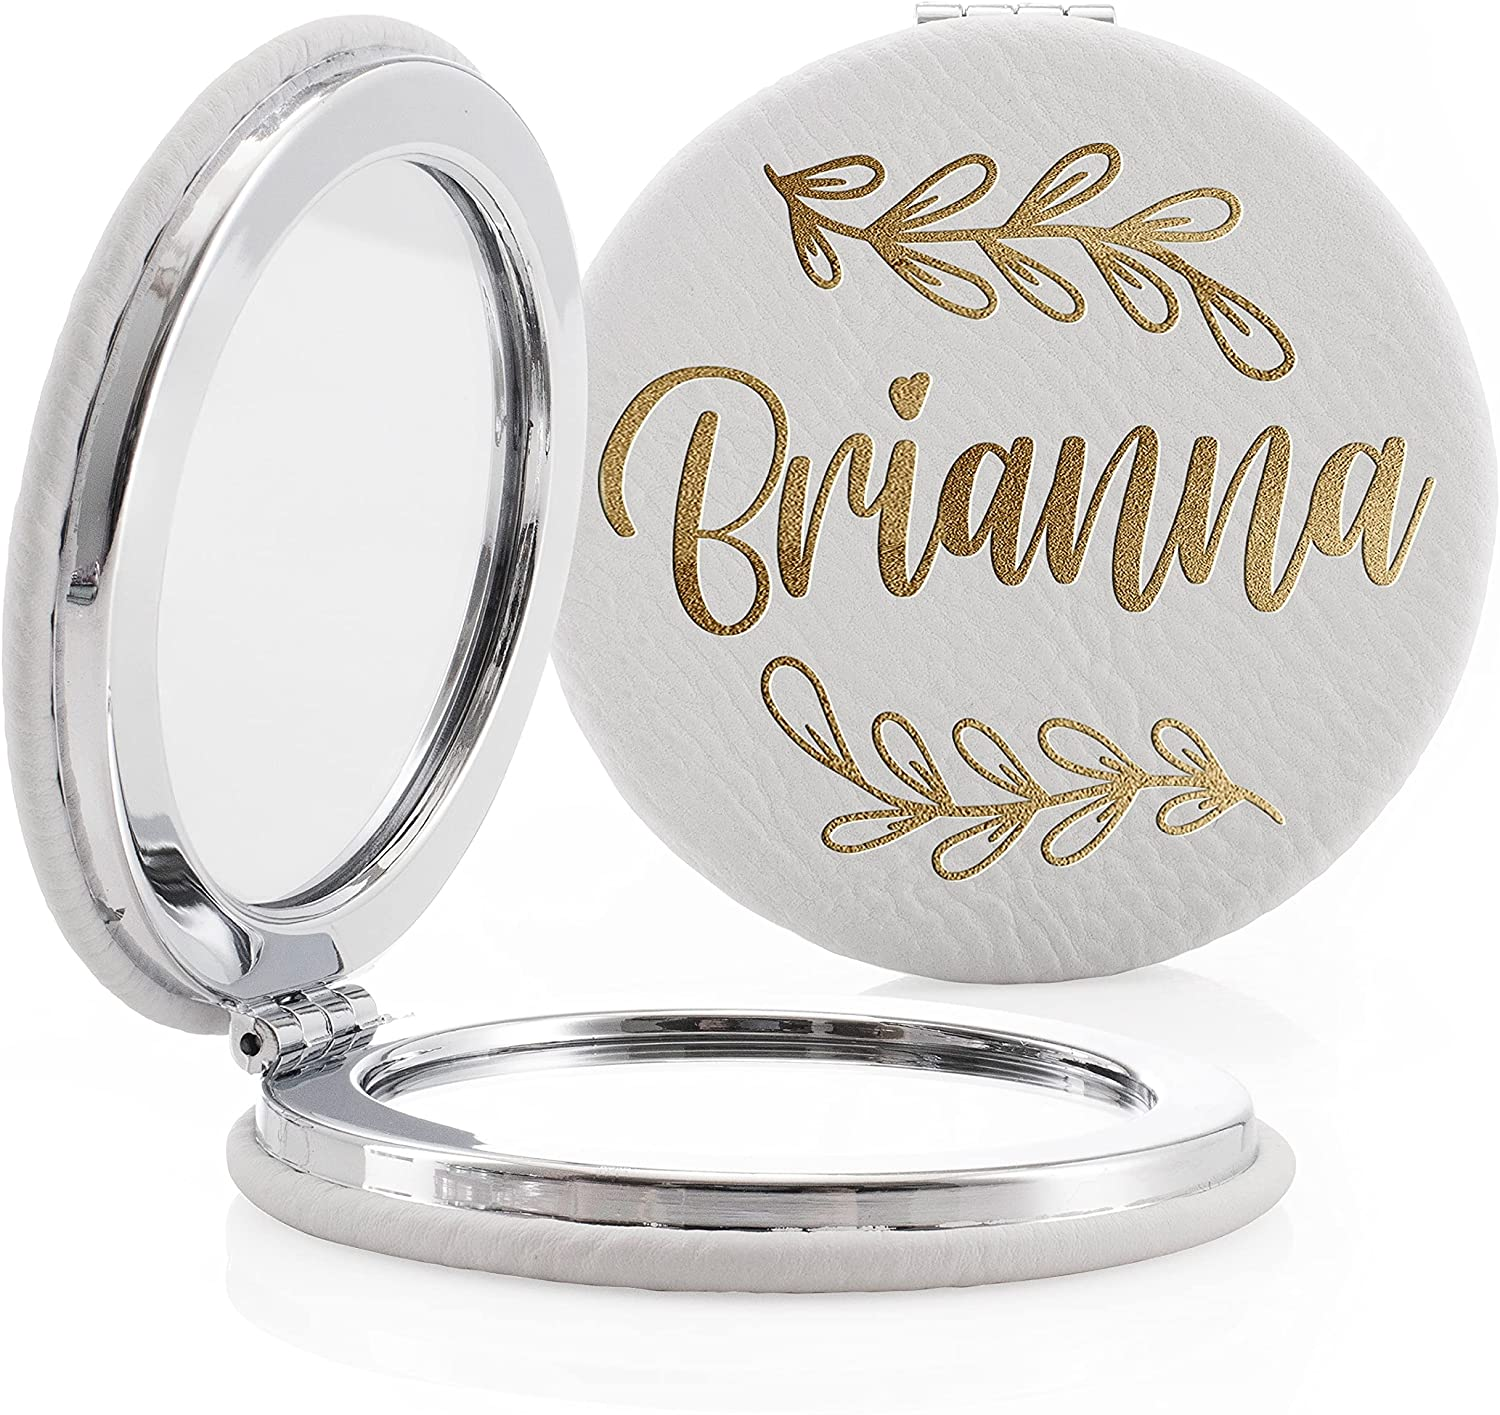 always-a-bridesmaid-personalized-compact-mirror